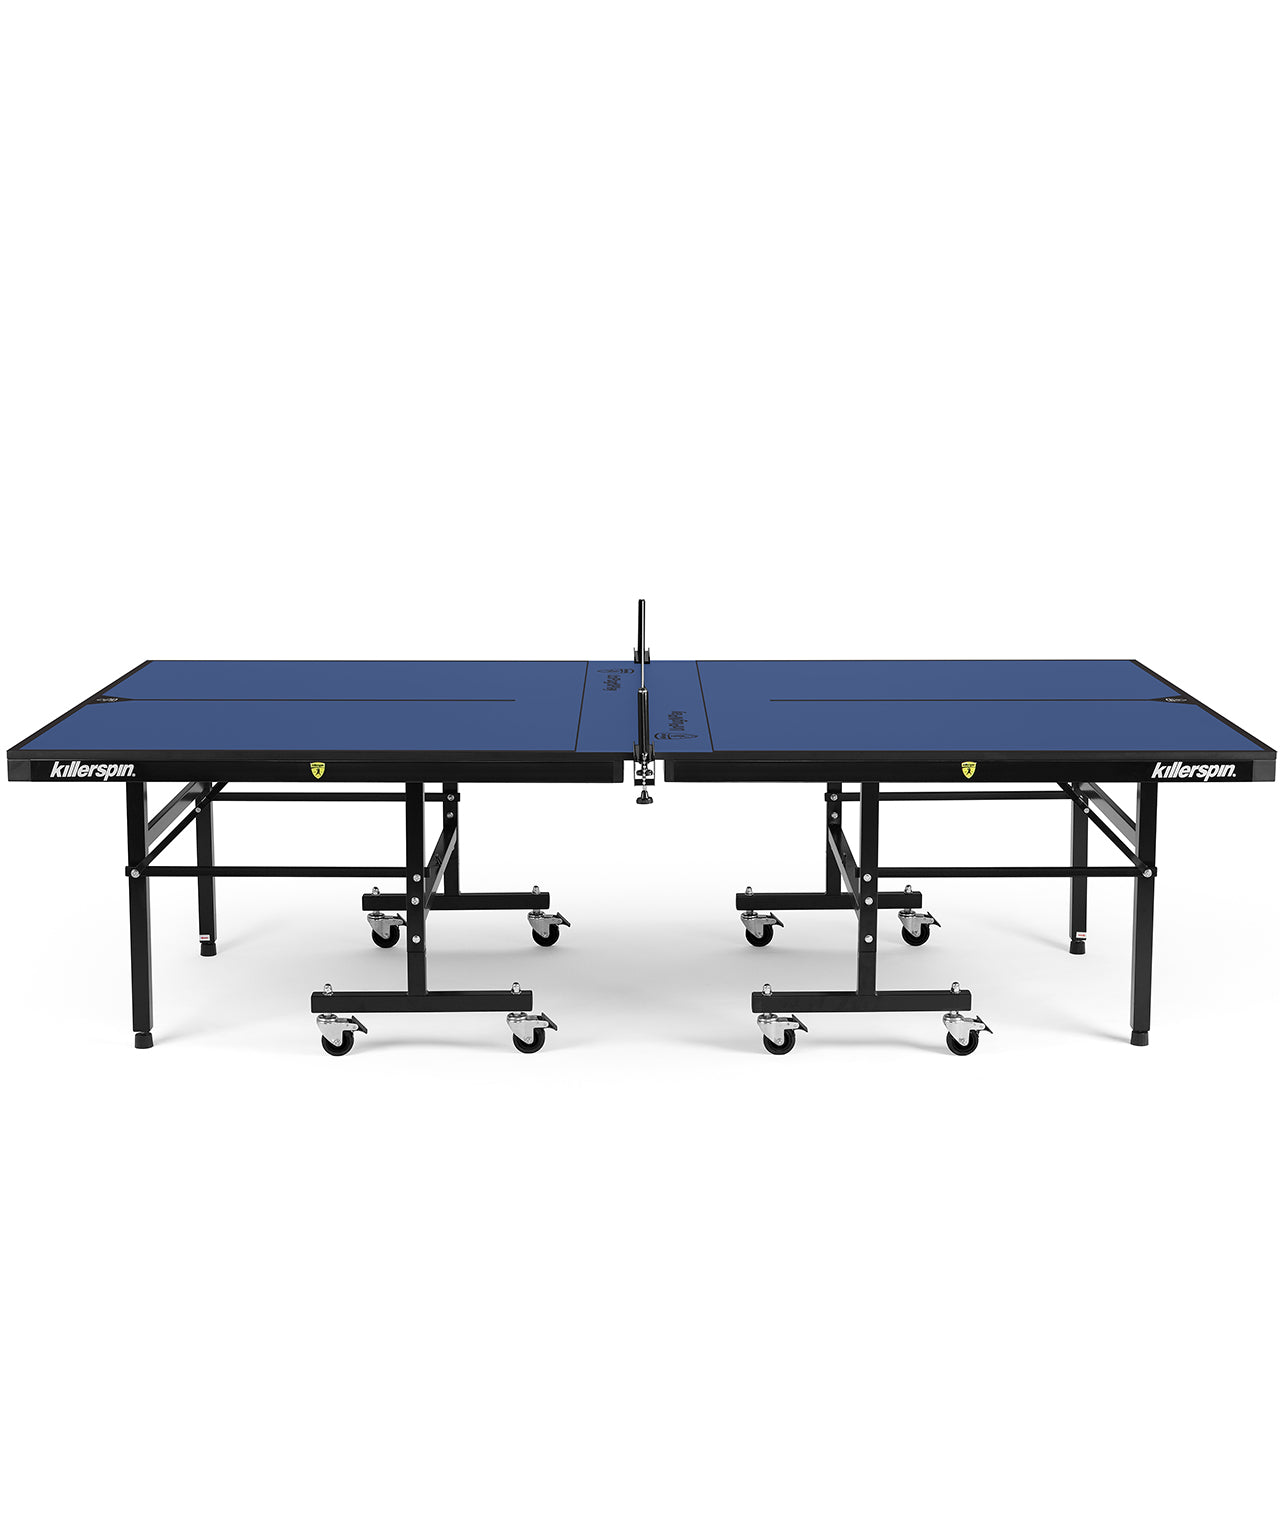 Killerspin Indoor Ping Pong Table UnPlugNPlay415 Mega DeepBlu Black frame Blue top model 2020 - side angle